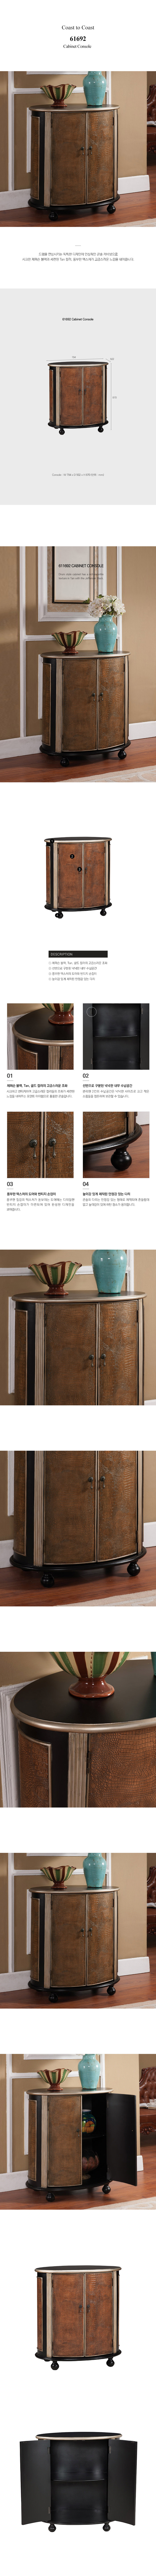 61692-Cabinet-Console_omg.jpg